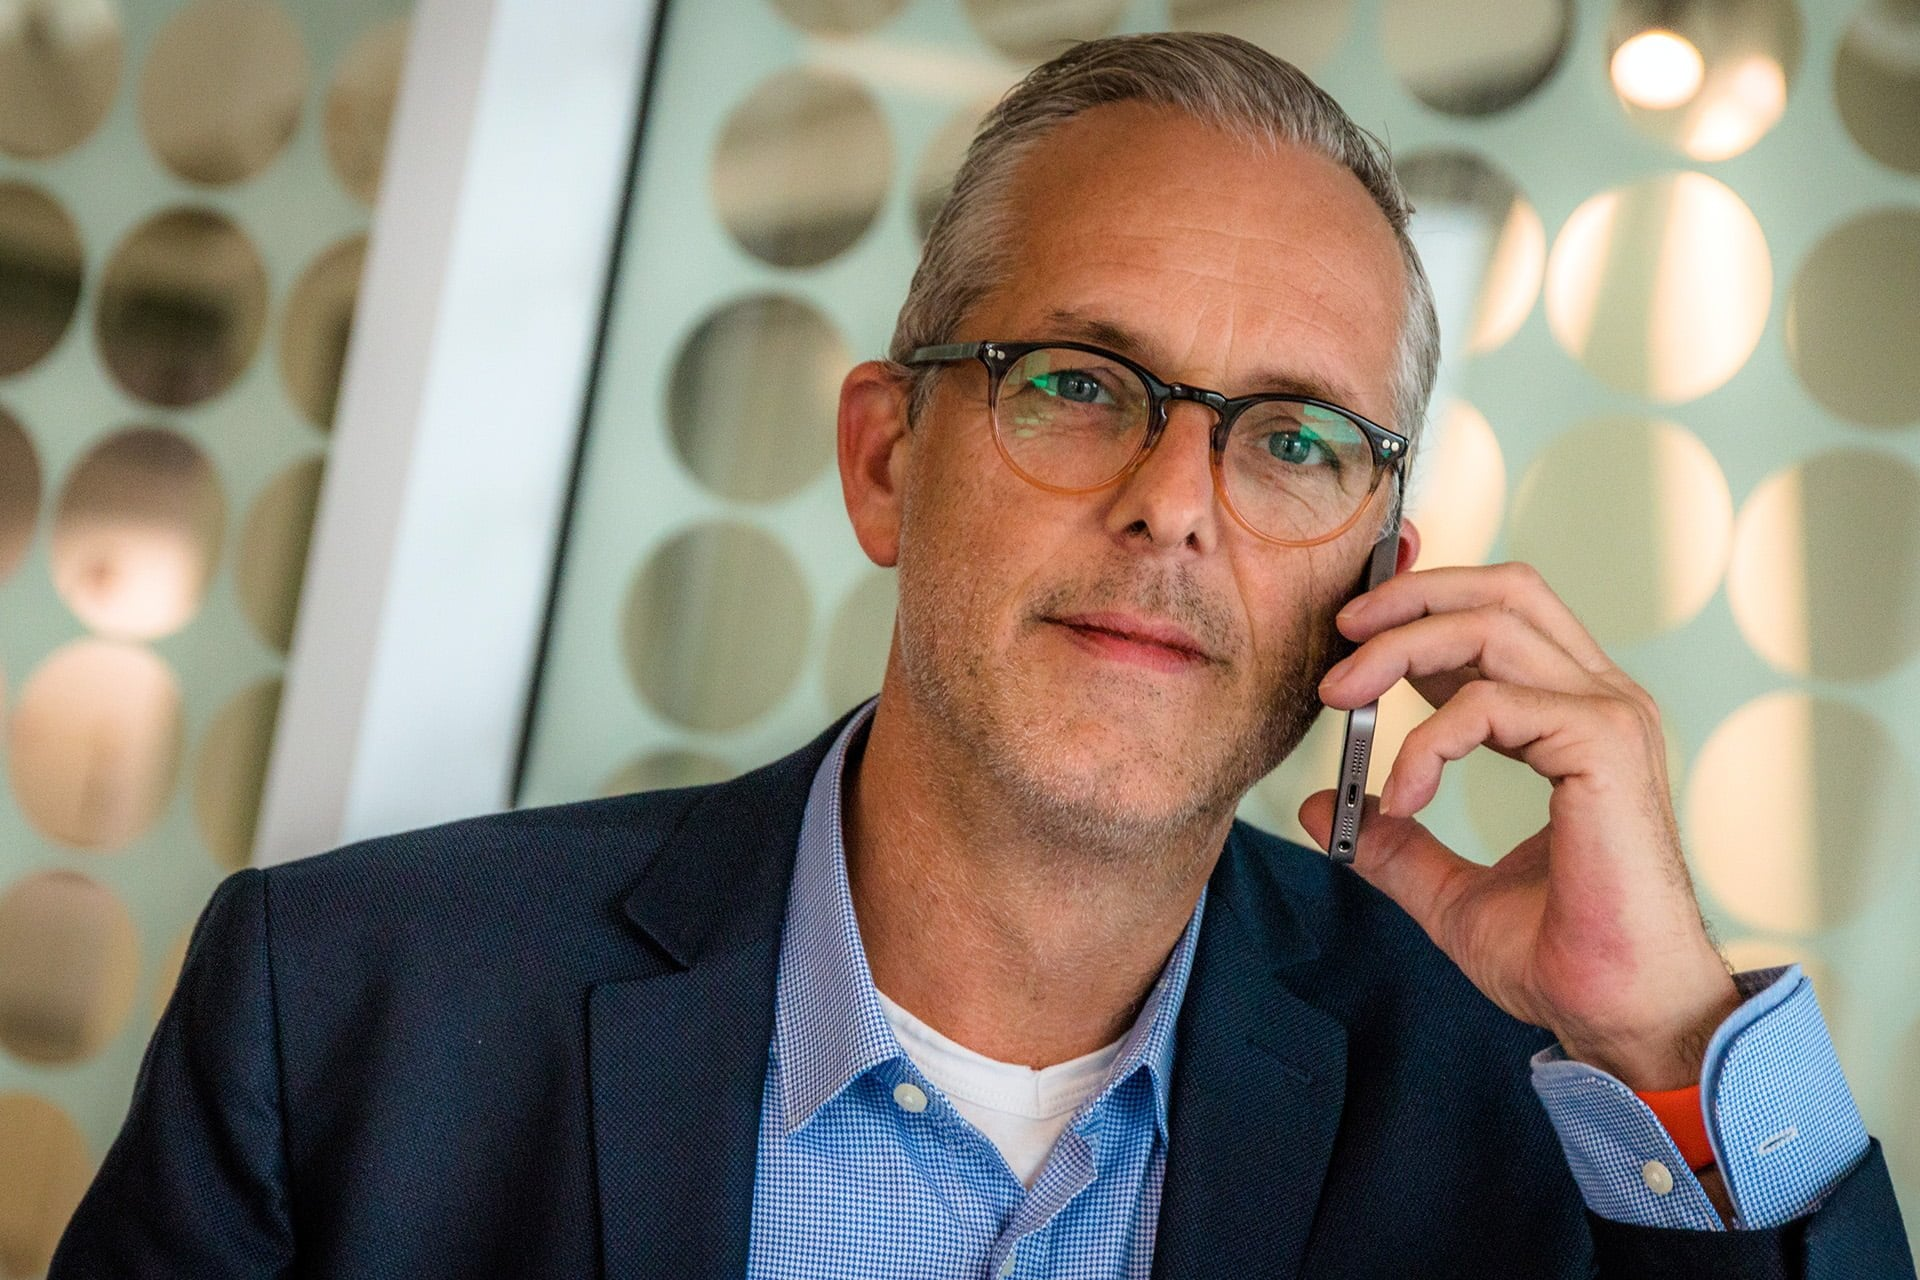 man wearing glasses holding smartphone to his ear listening